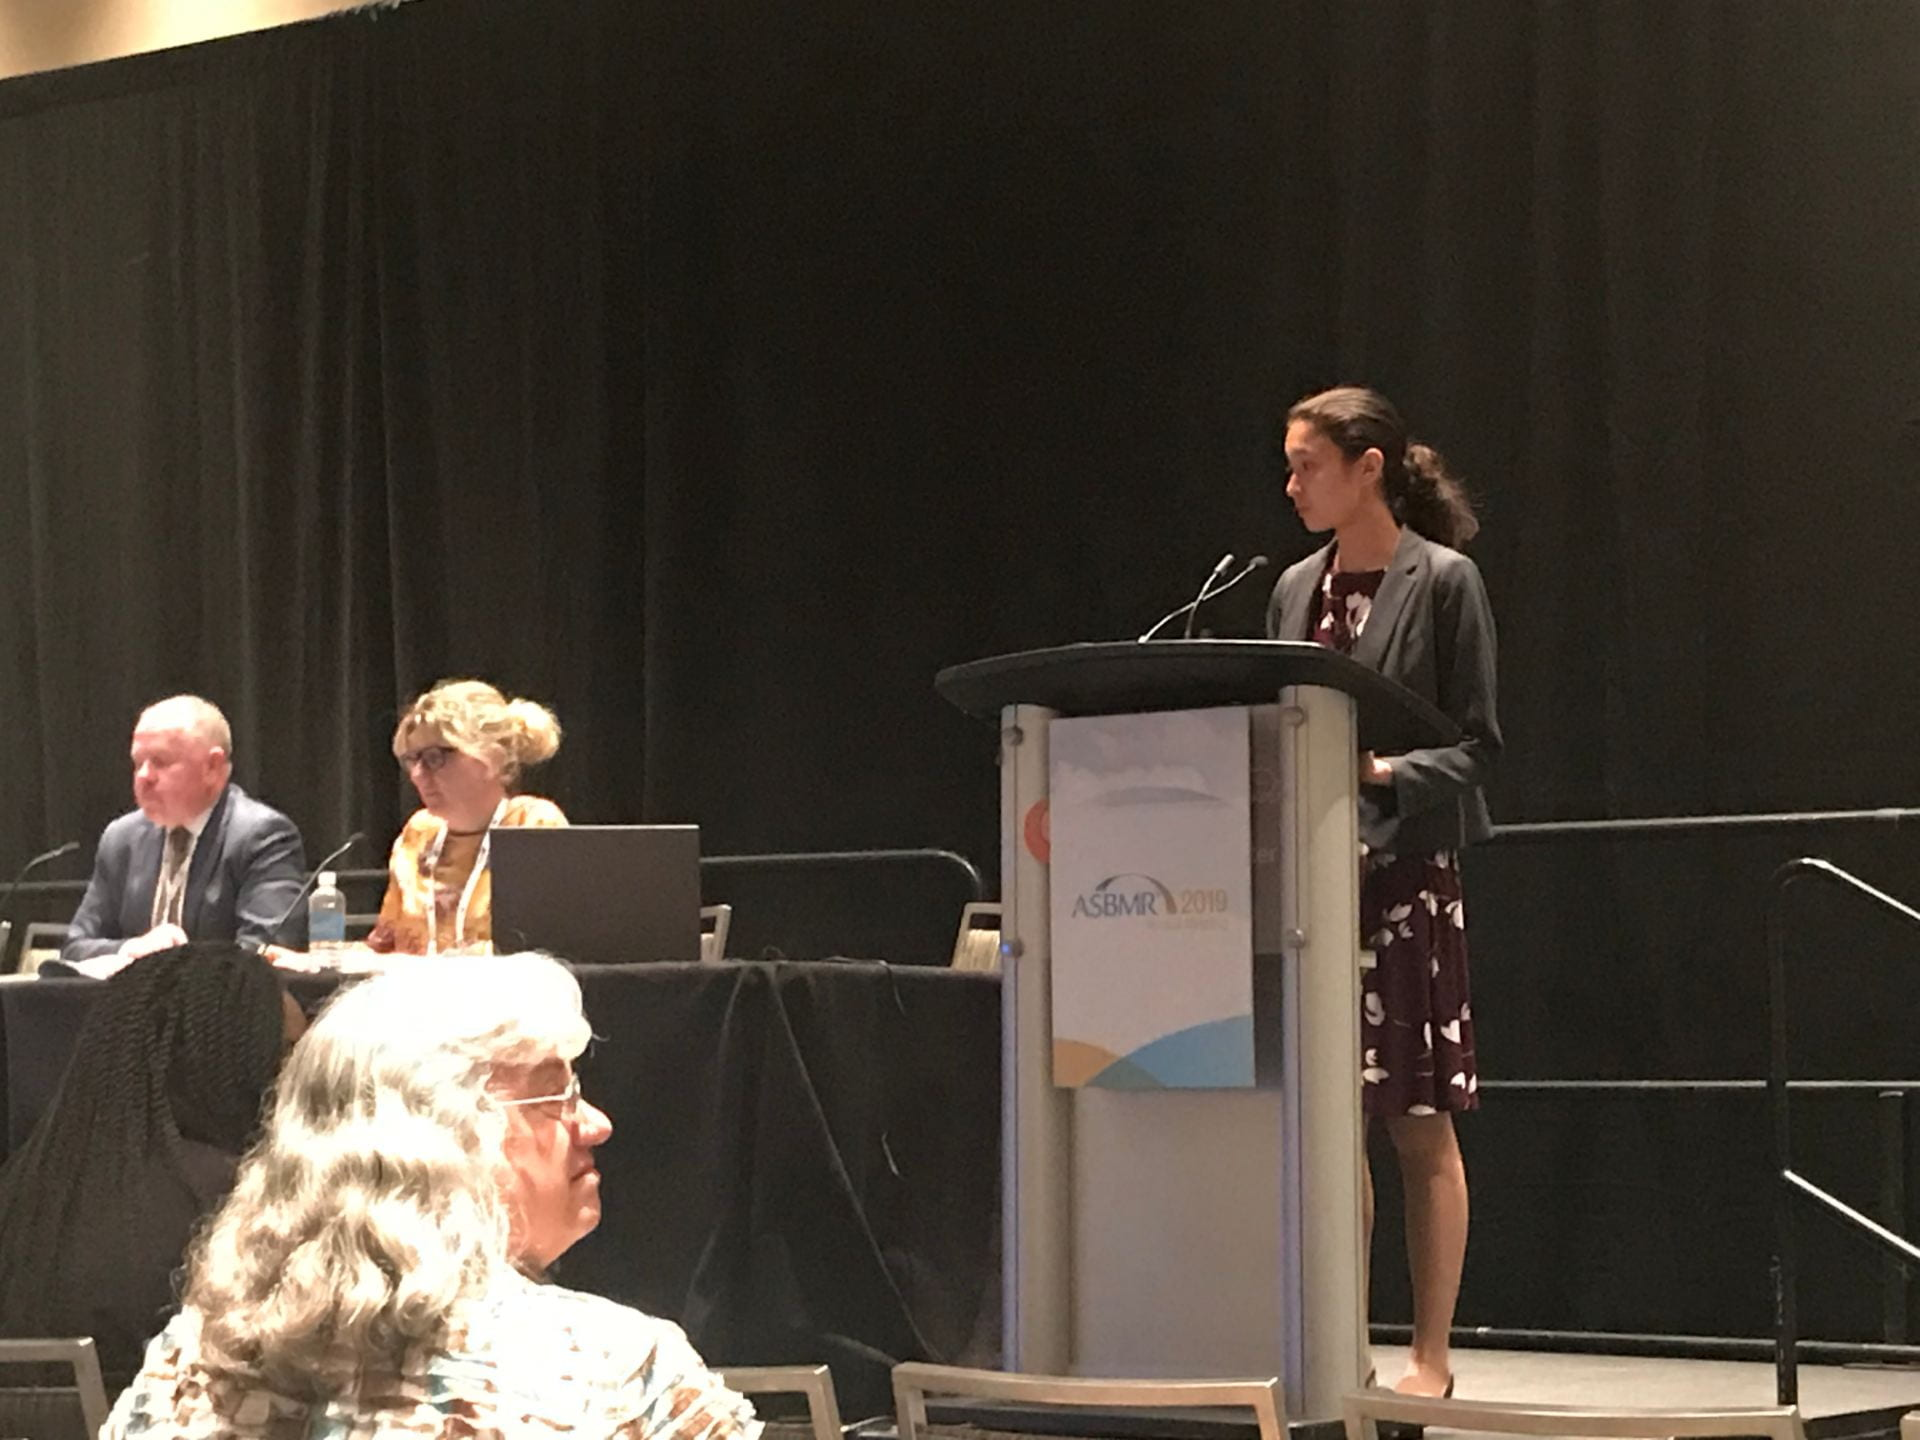 Postdoctoral fellow Dr. Natalie Wee presents at ASBMR